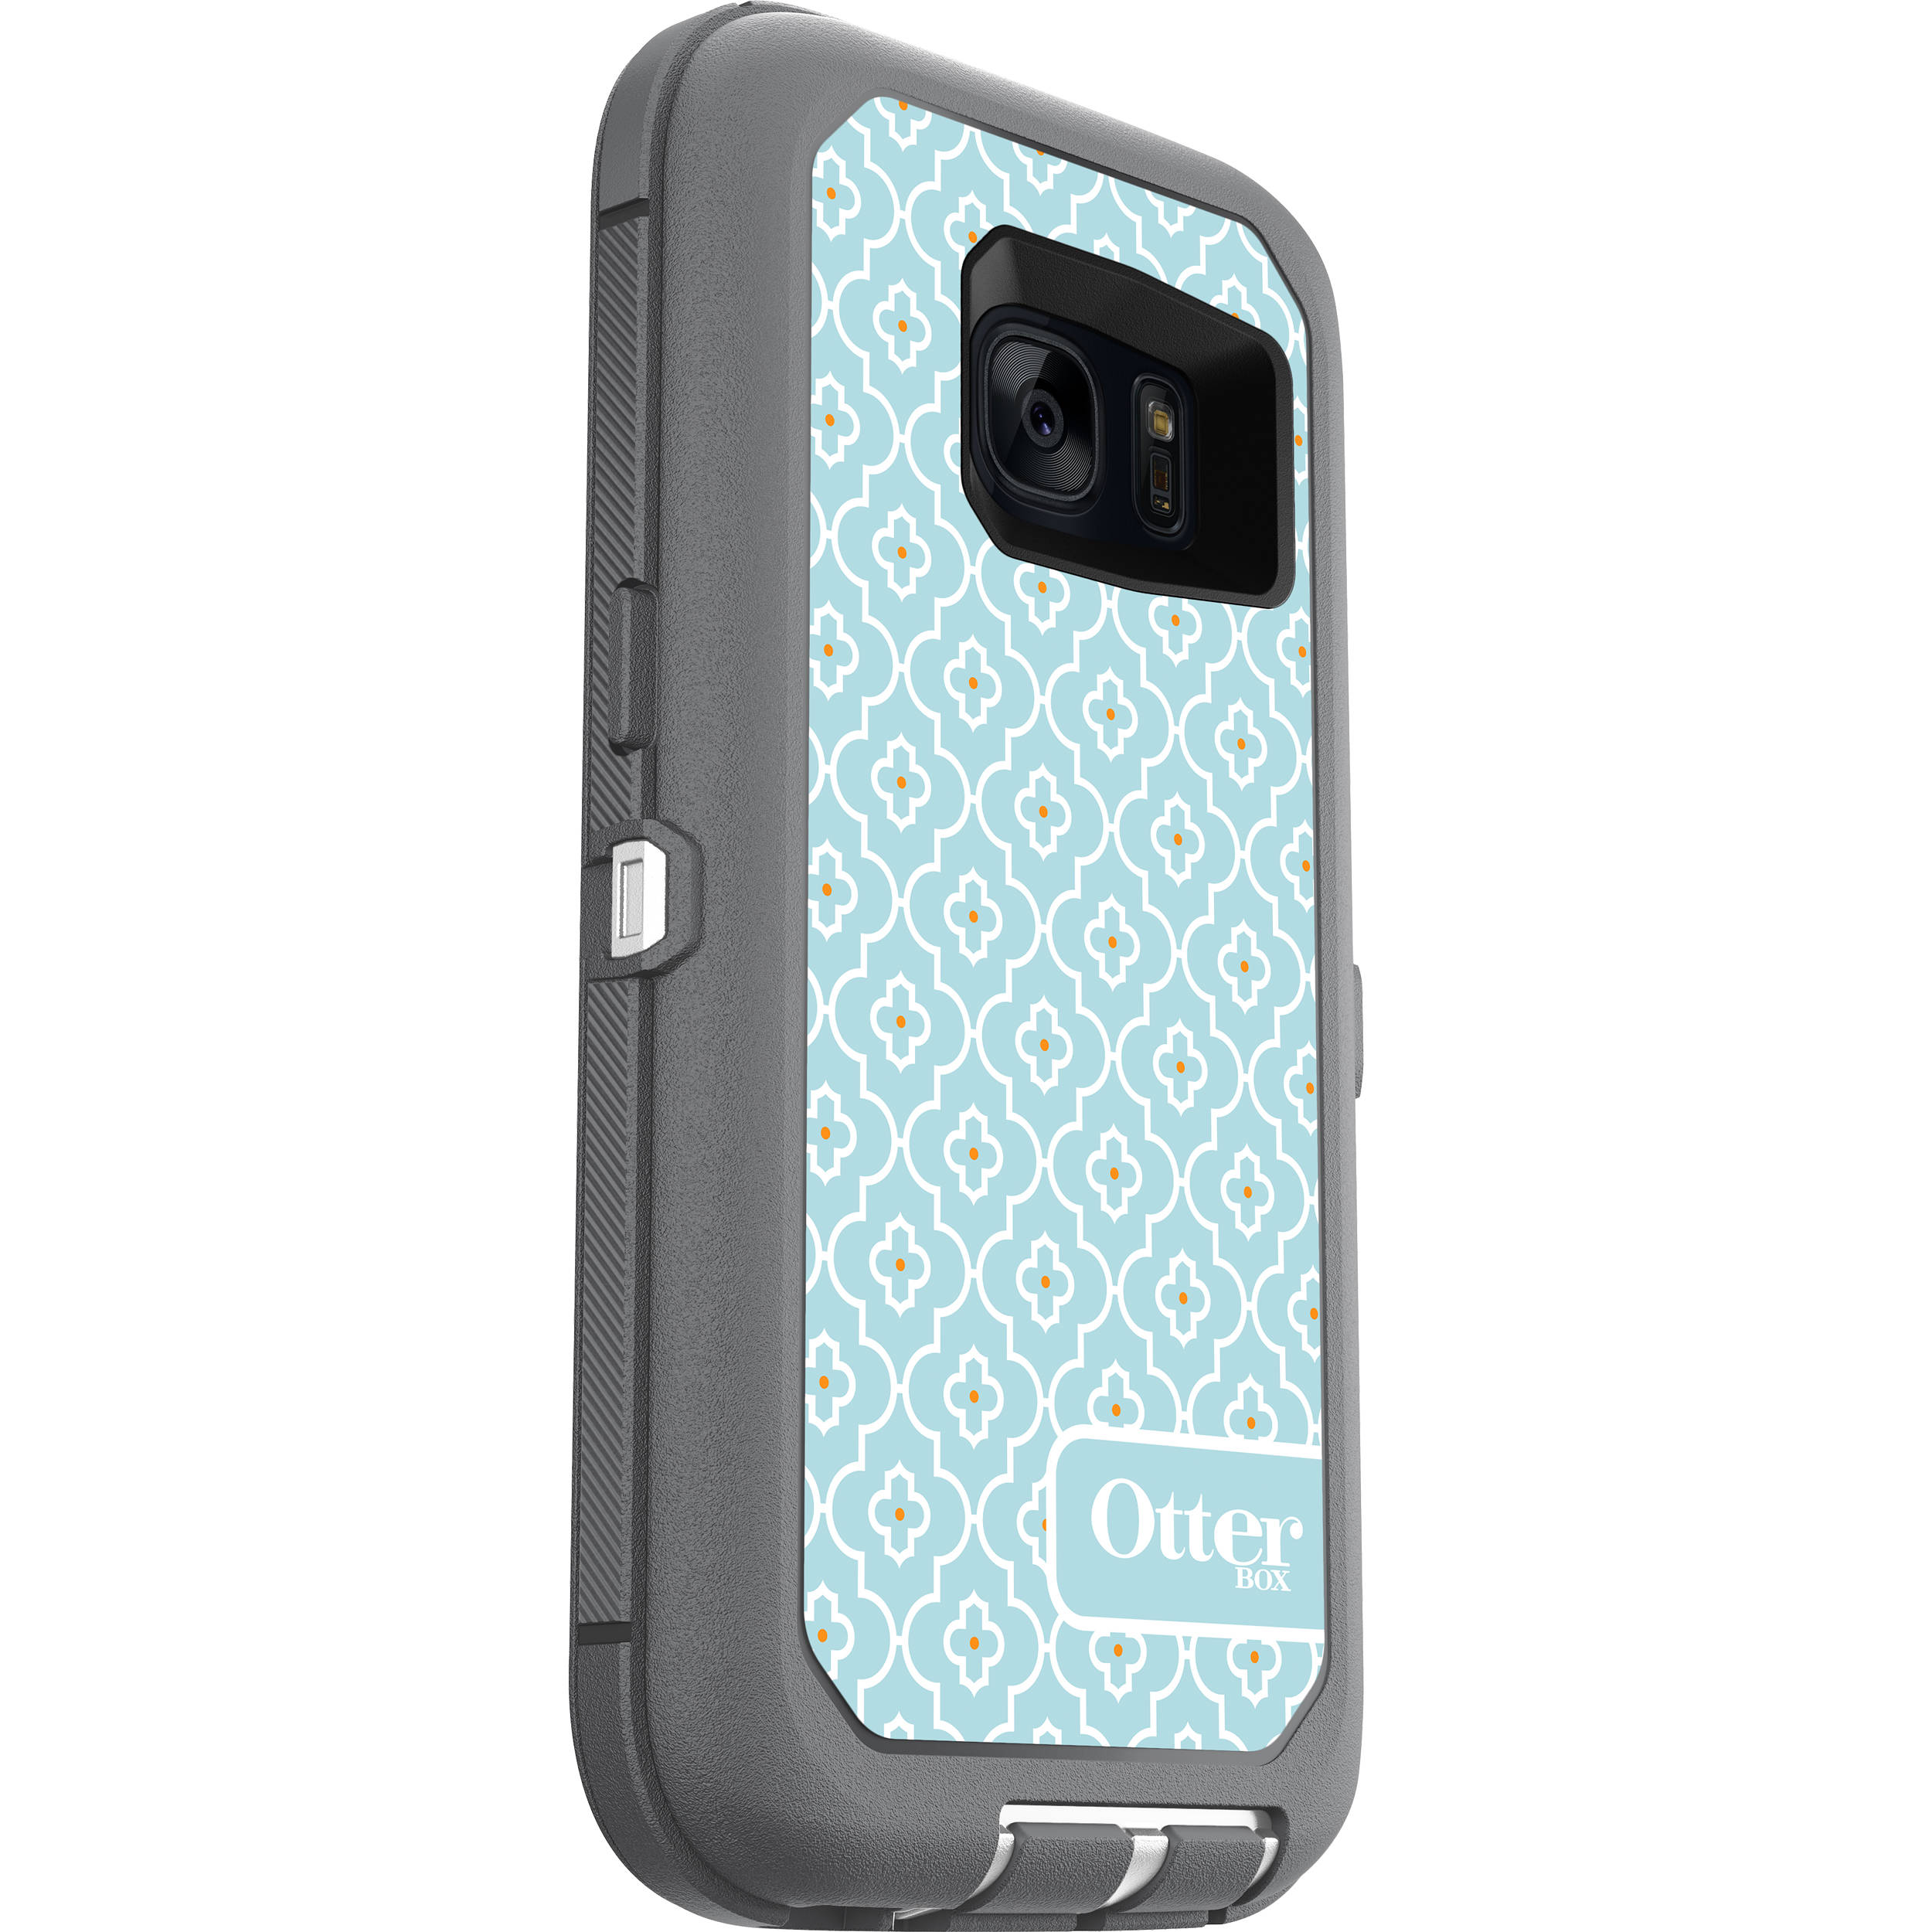 designer fashion f4057 48cd4 OtterBox Defender Series Case for Galaxy S7 (Moroccan Sky)